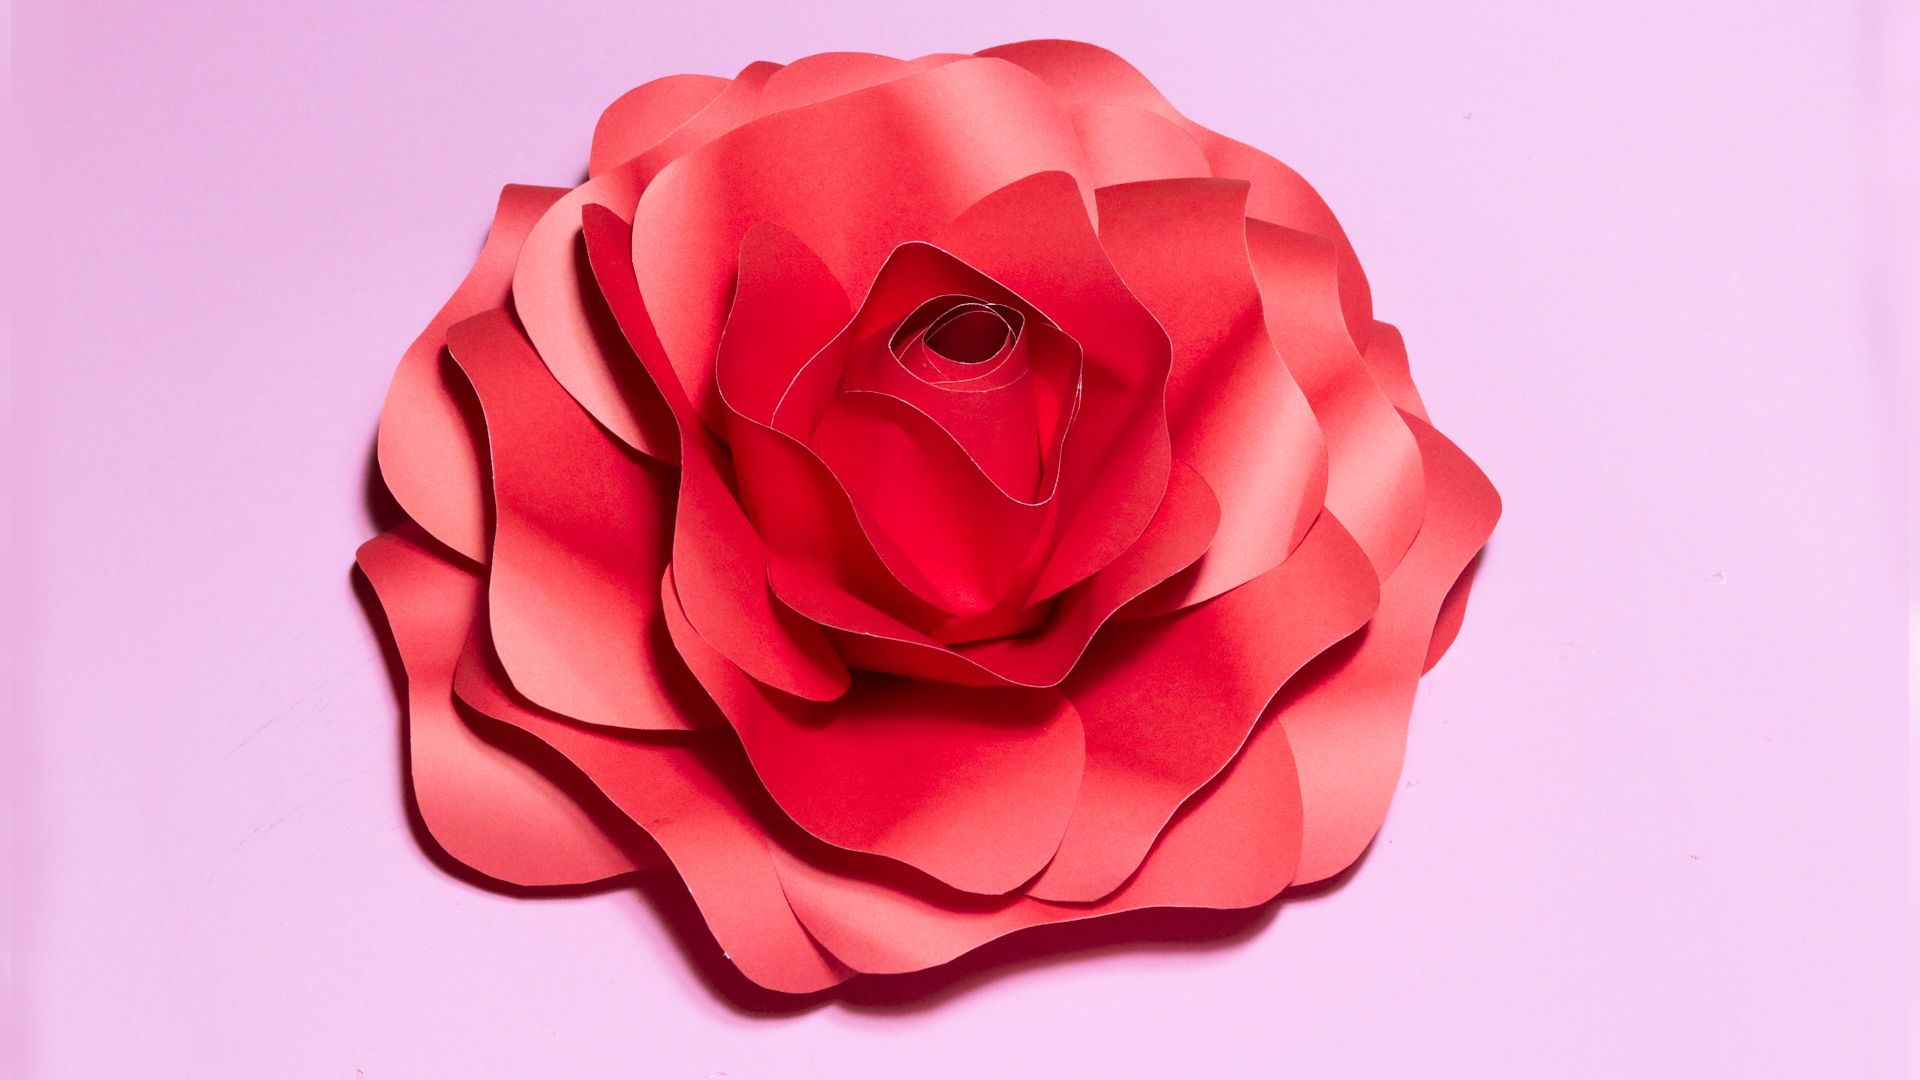 How To Make A Realistic Large Rose Flower Easy Tutorial To Make A